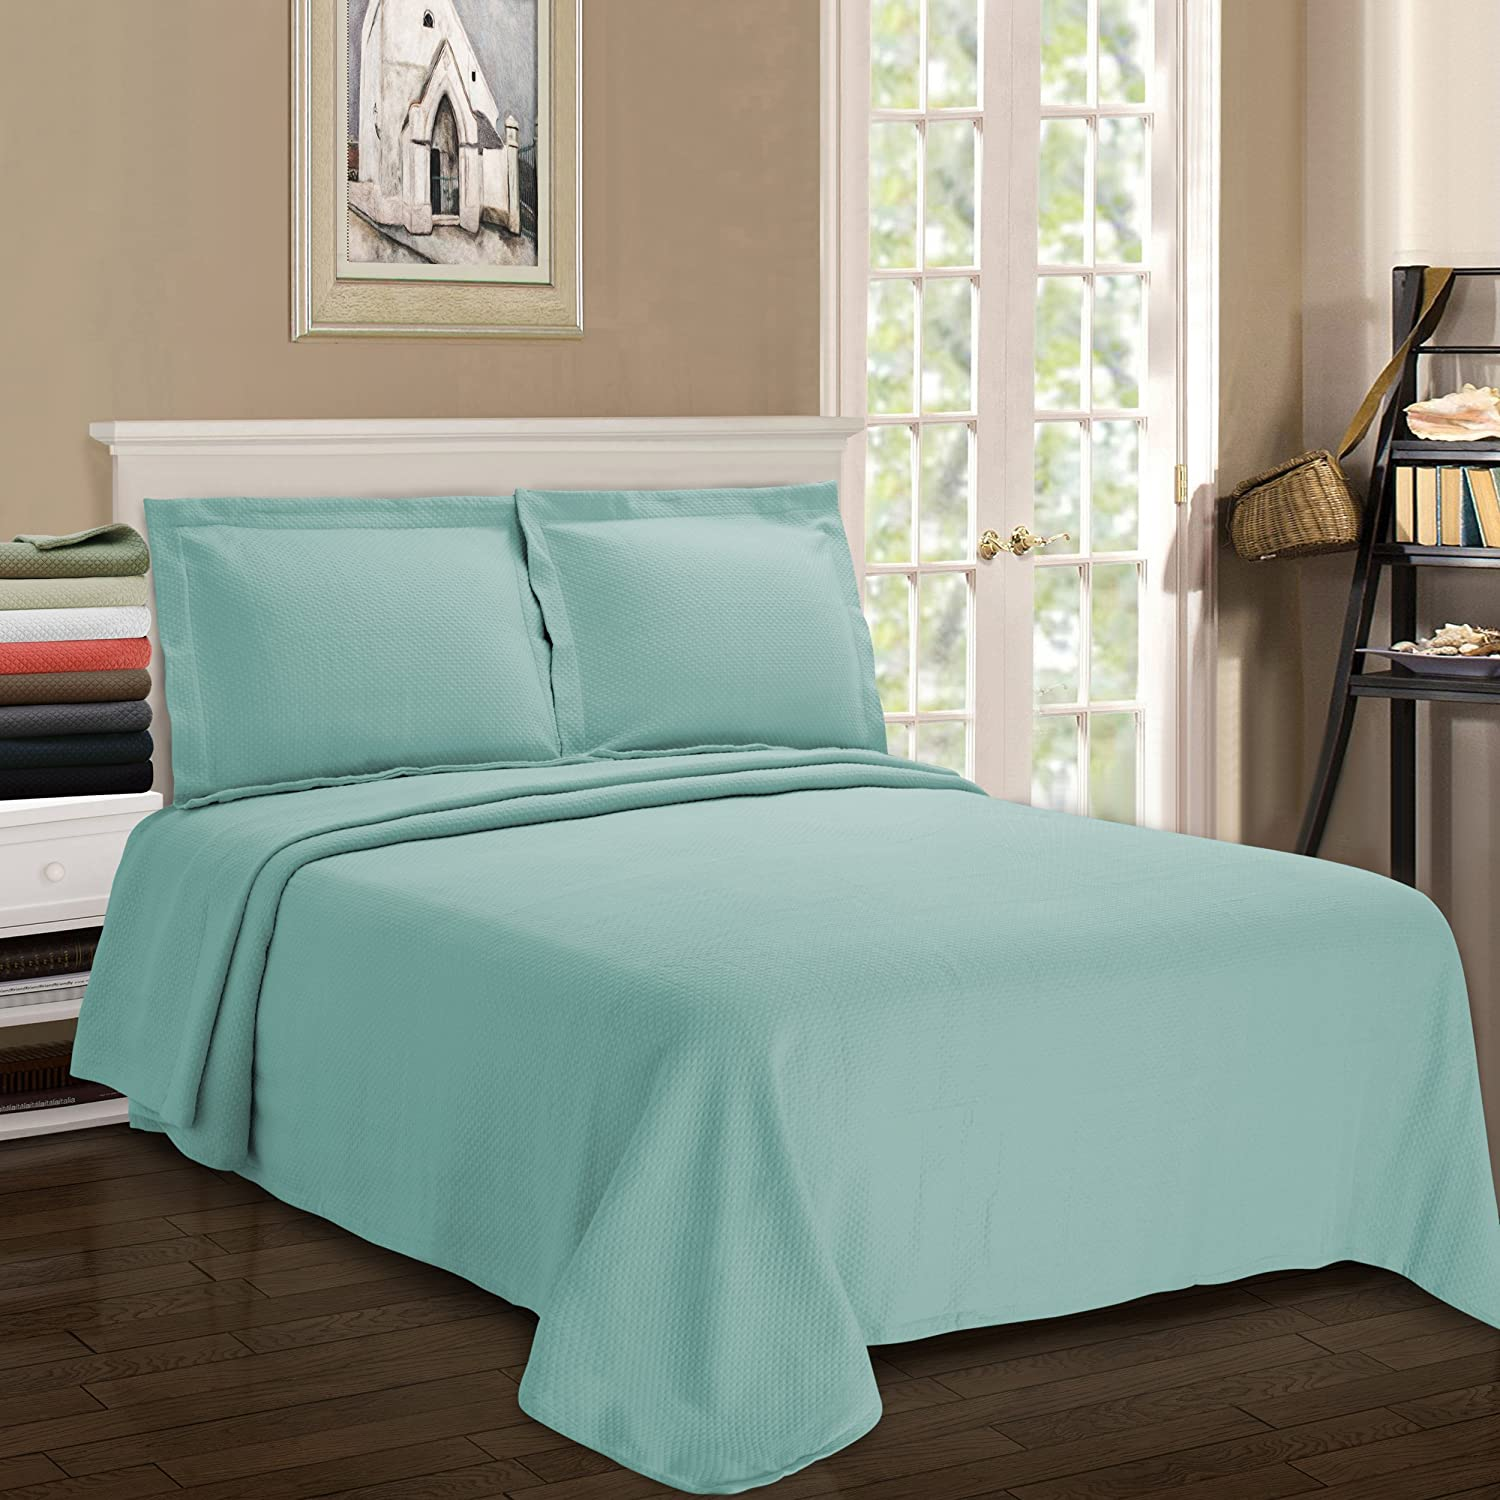 Superior Diamond Solitaire Jacquard Matelass 100 Bedcover Premium Cotton Bedspread With Matching Shams Queen Aqua Home Kitchen